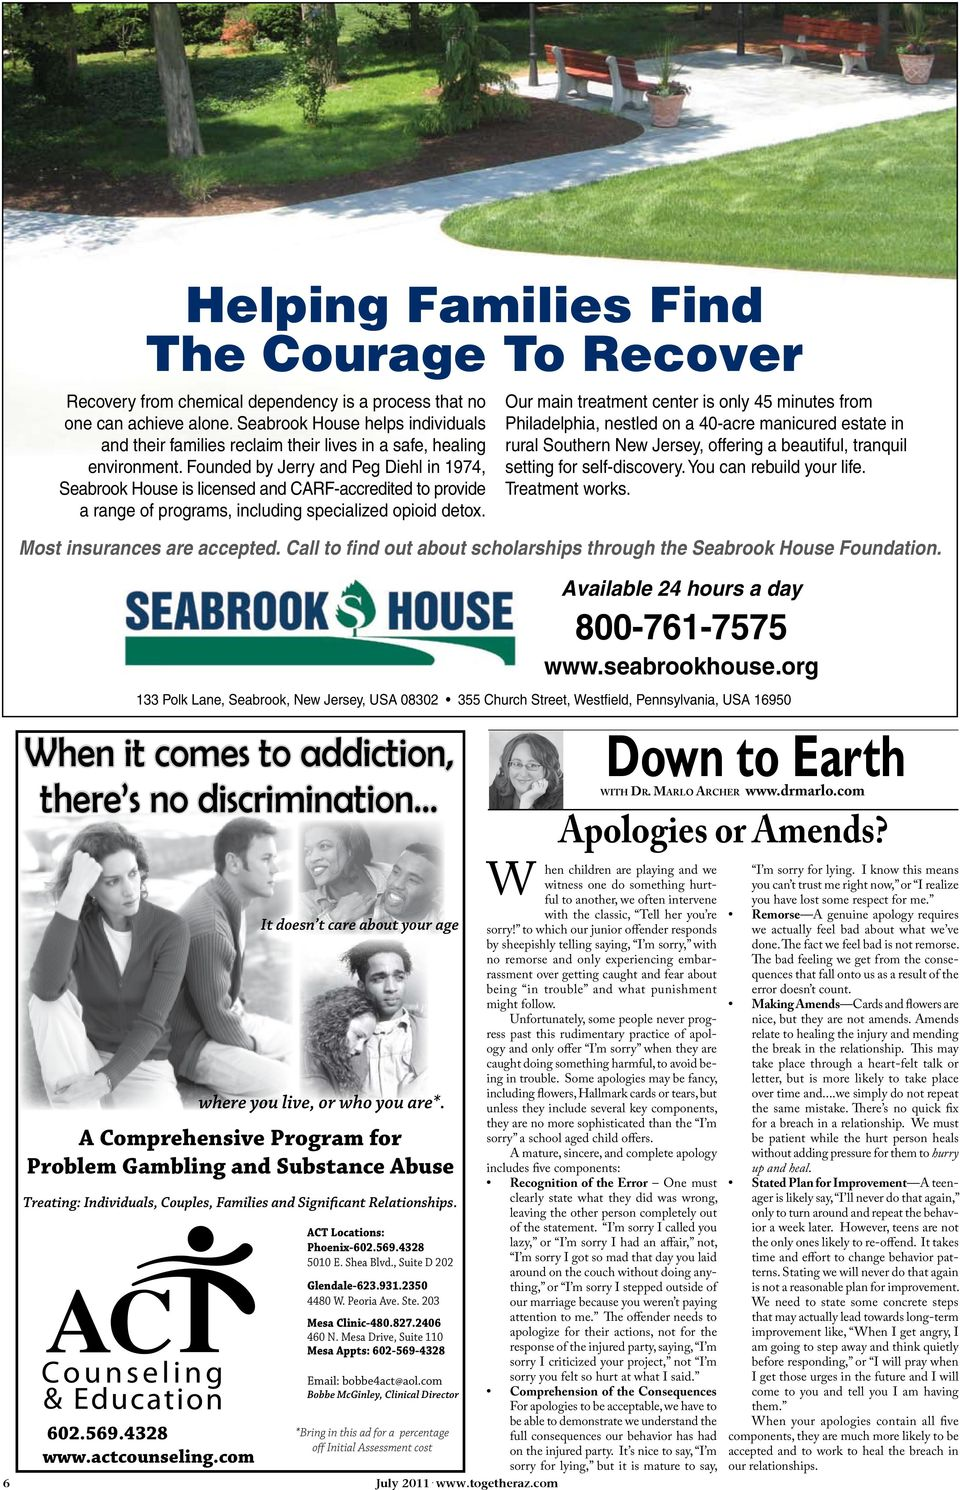 Founded by Jerry and Peg Diehl in 1974, Seabrook House is licensed and CARF-accredited to provide a range of programs, including specialized opioid detox.